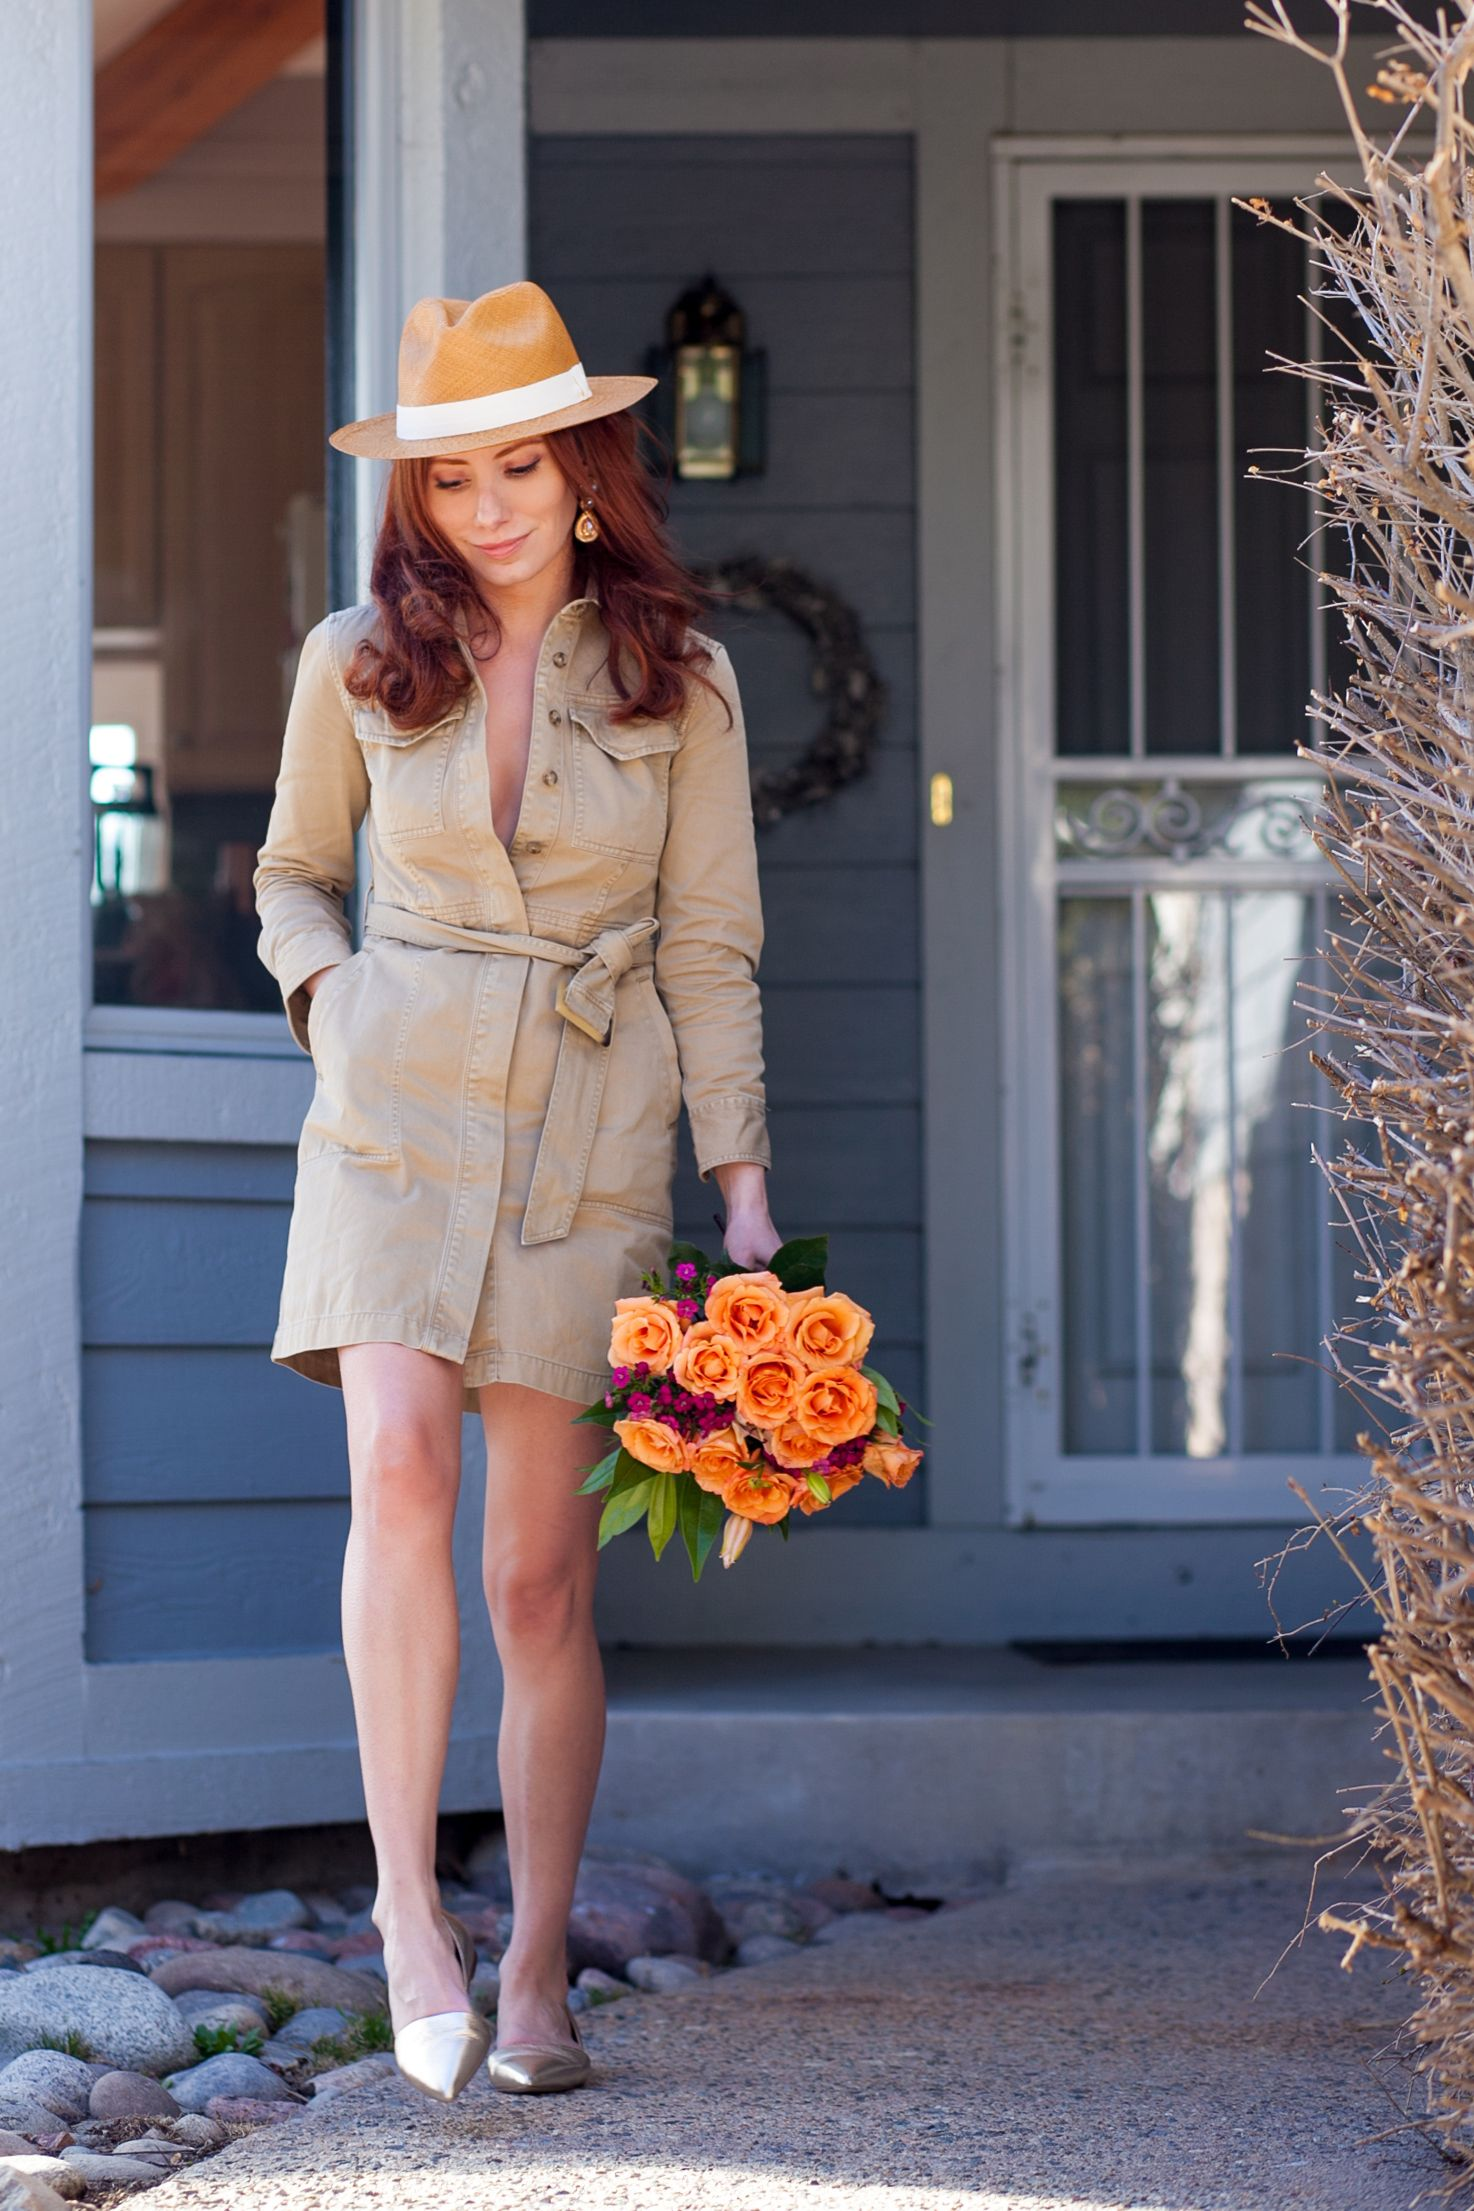 922a0179e04 J Crew Belted Chino Shirtdress + Panama Hat + Sloan Gold D Orsay Loafers   ootd  springstyle